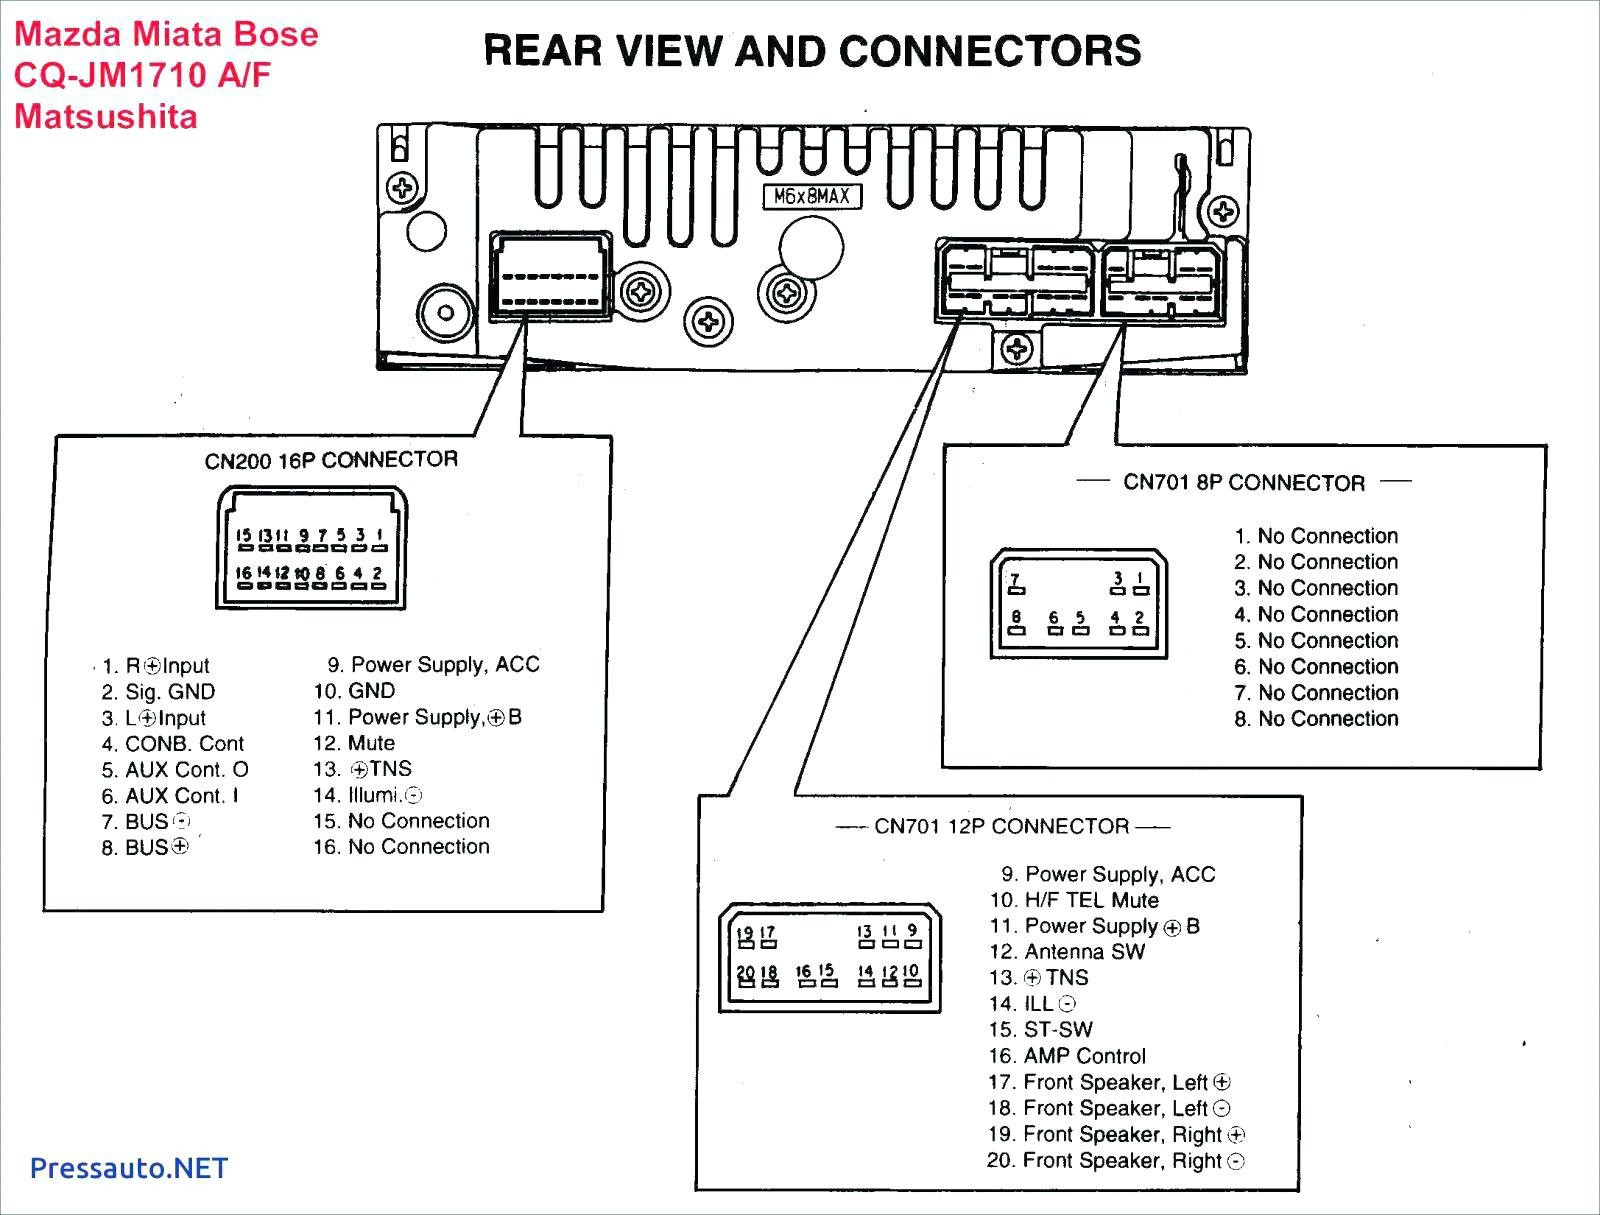 Kicker Cx 300 1 Wiring Diagram | Schematic Diagram on 2 4 ohm with 2 channel amp diagram, 4 ohm to 2 ohm diagram, ohm wiring chart, ohm speakers diagram,